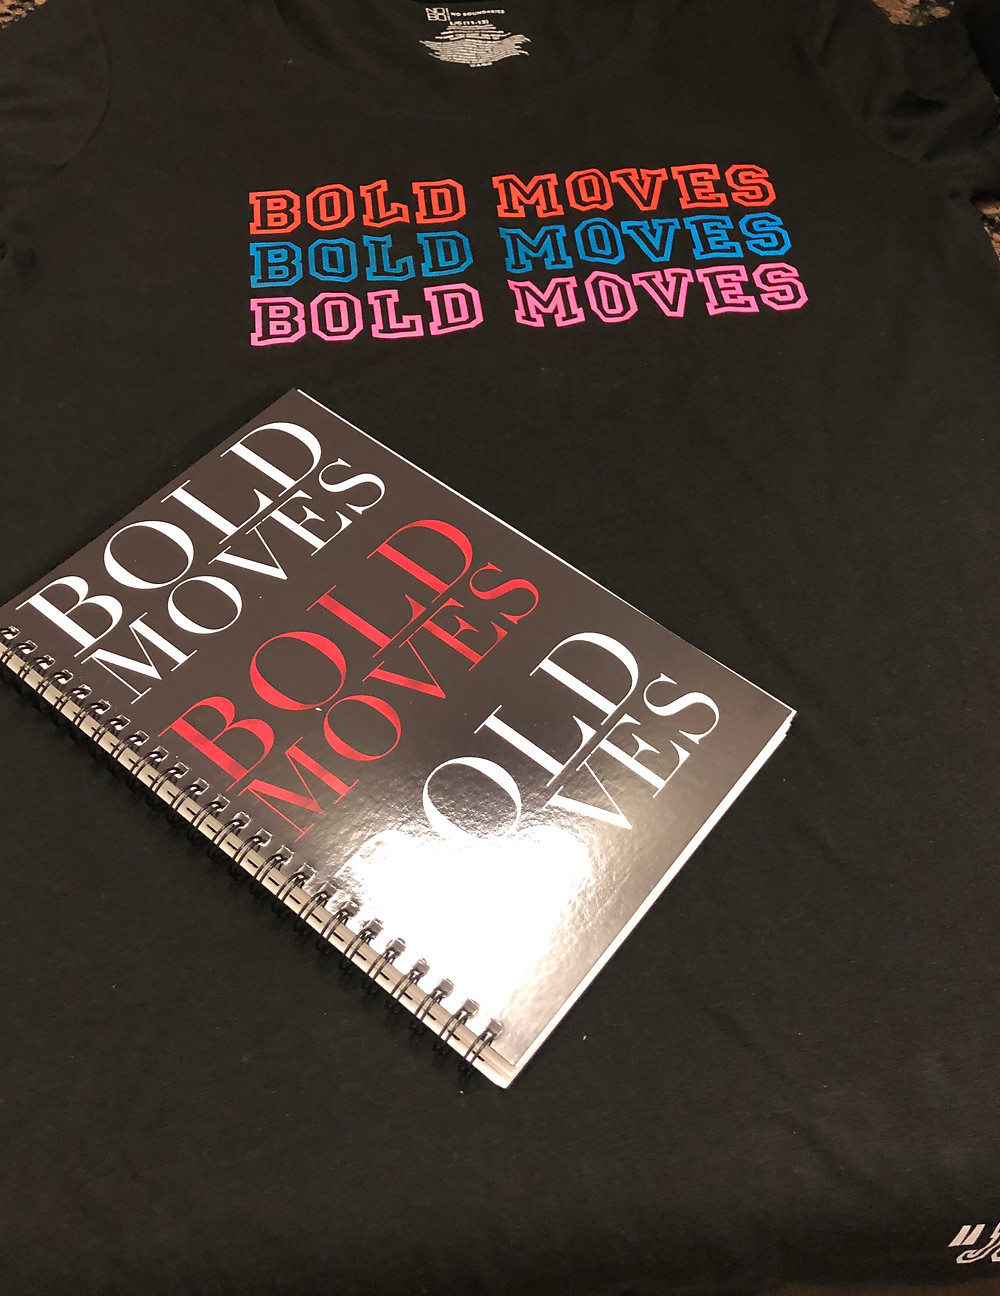 Bold Moves Tee Shirt and journal